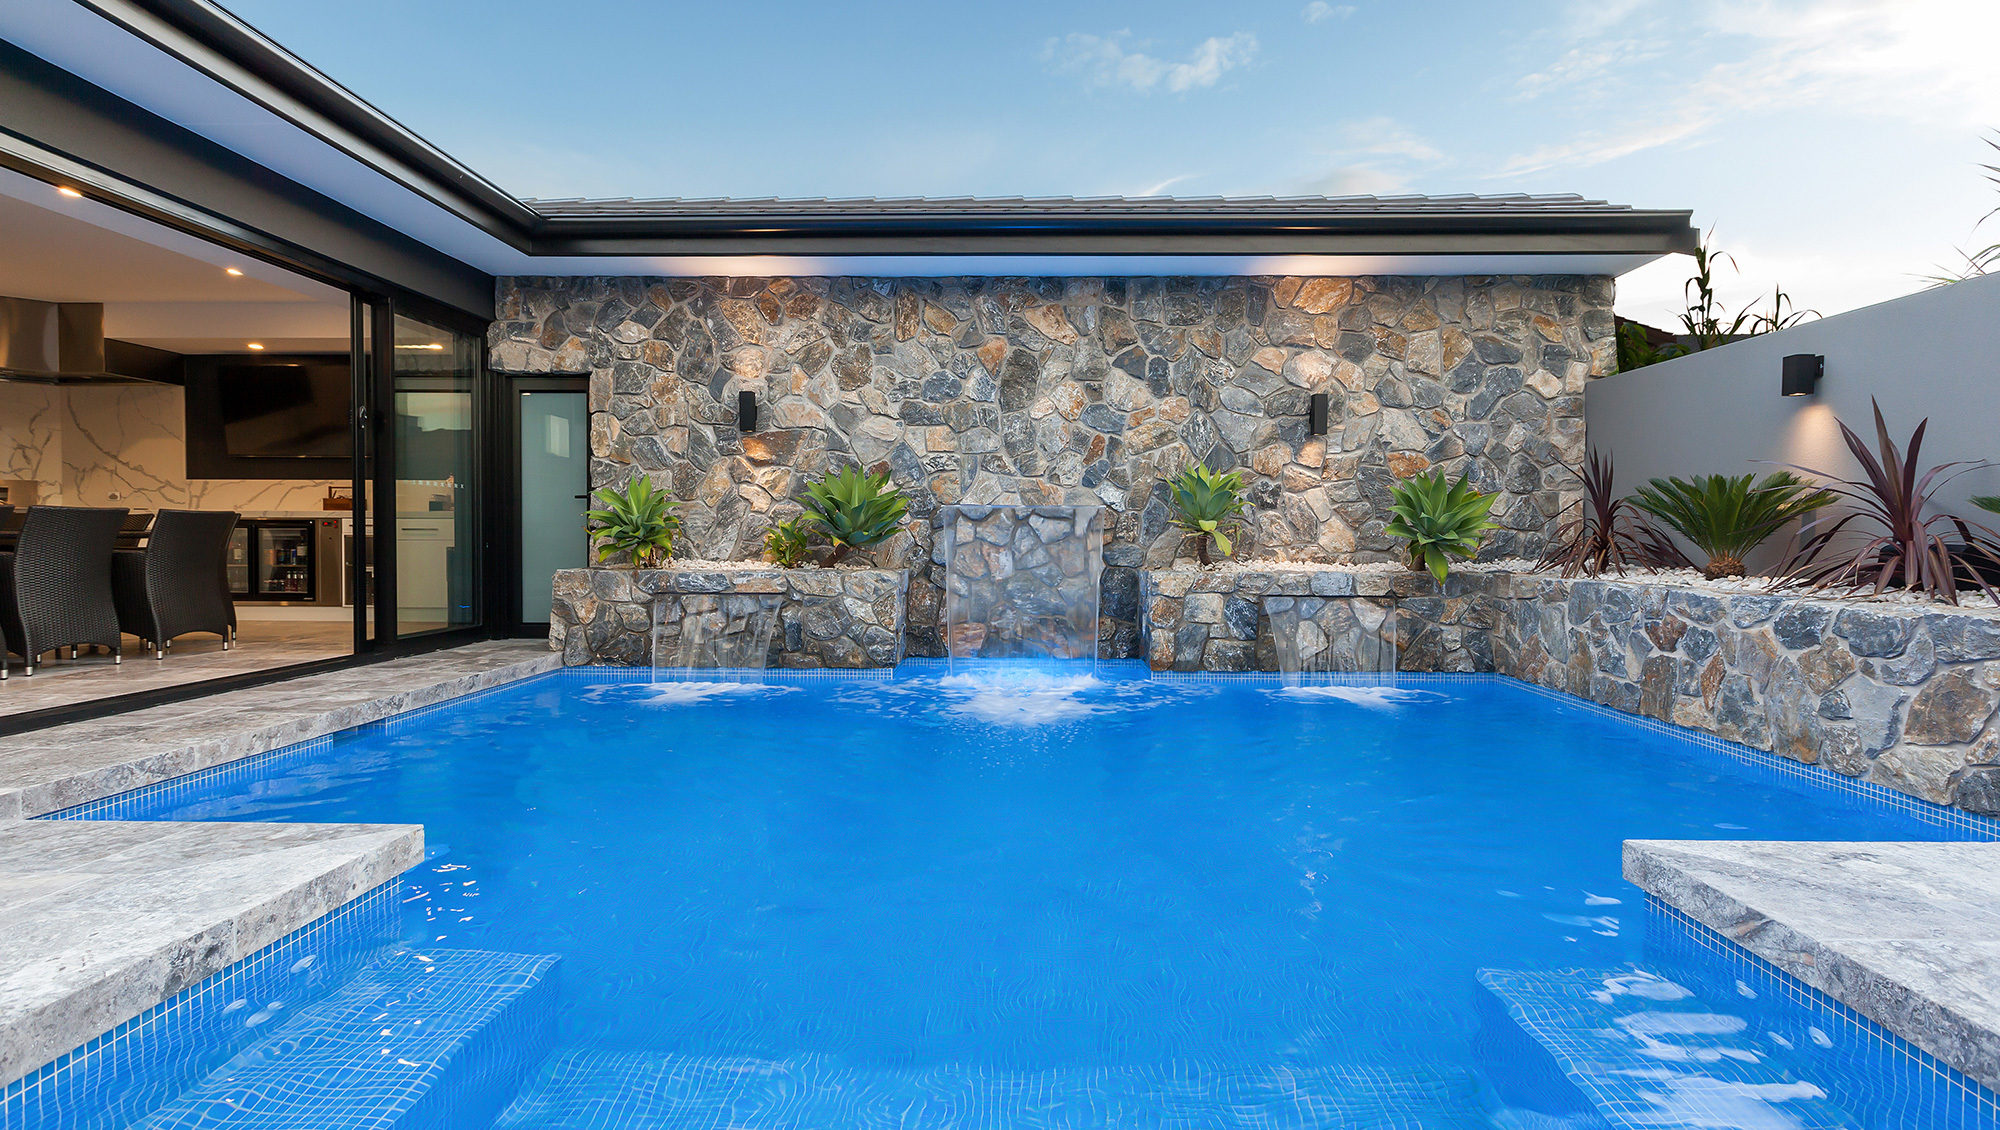 Welcome to design pools design pools for Pool design services